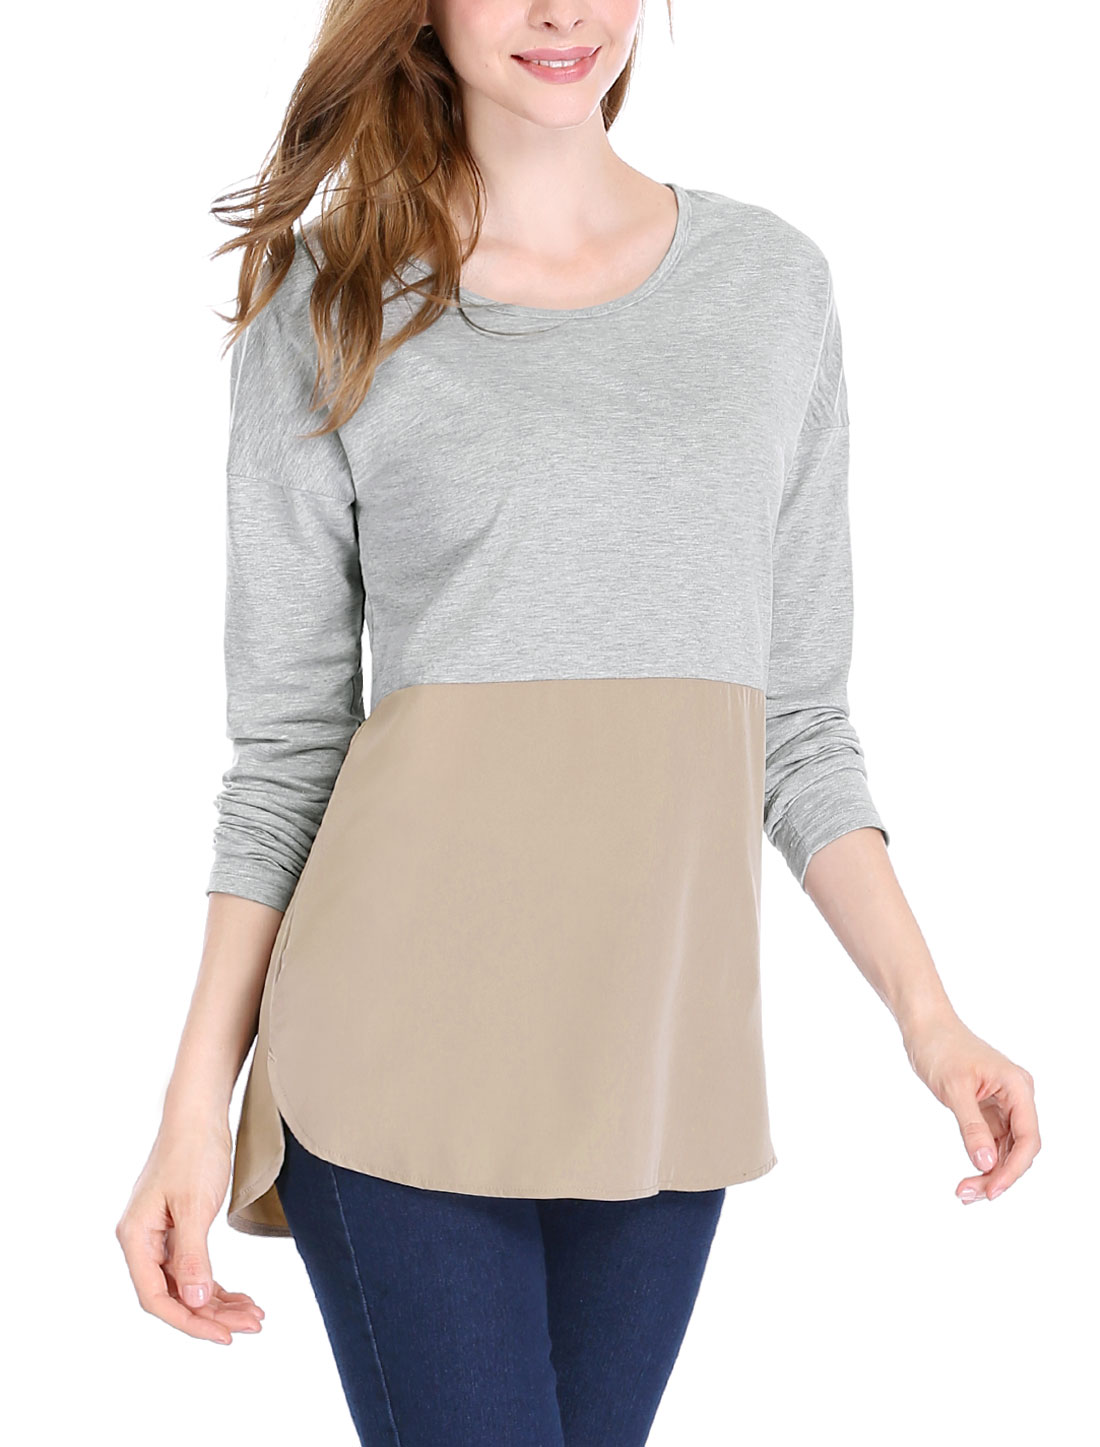 Women Drop Long Sleeves Color Block Panel Tunic Top Gray S